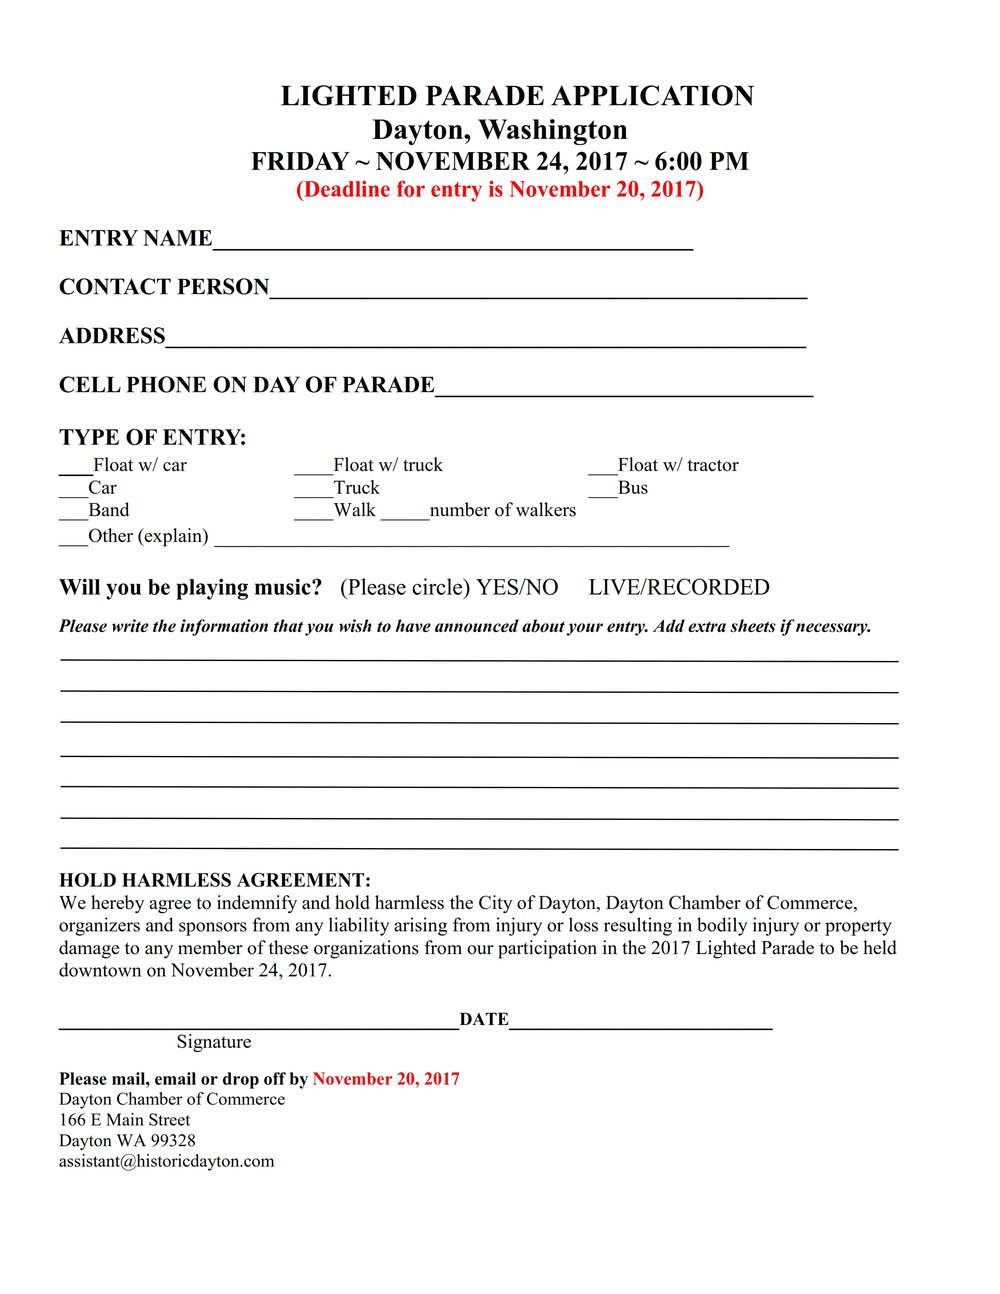 2017 Lighted Parade Forms_002.jpg